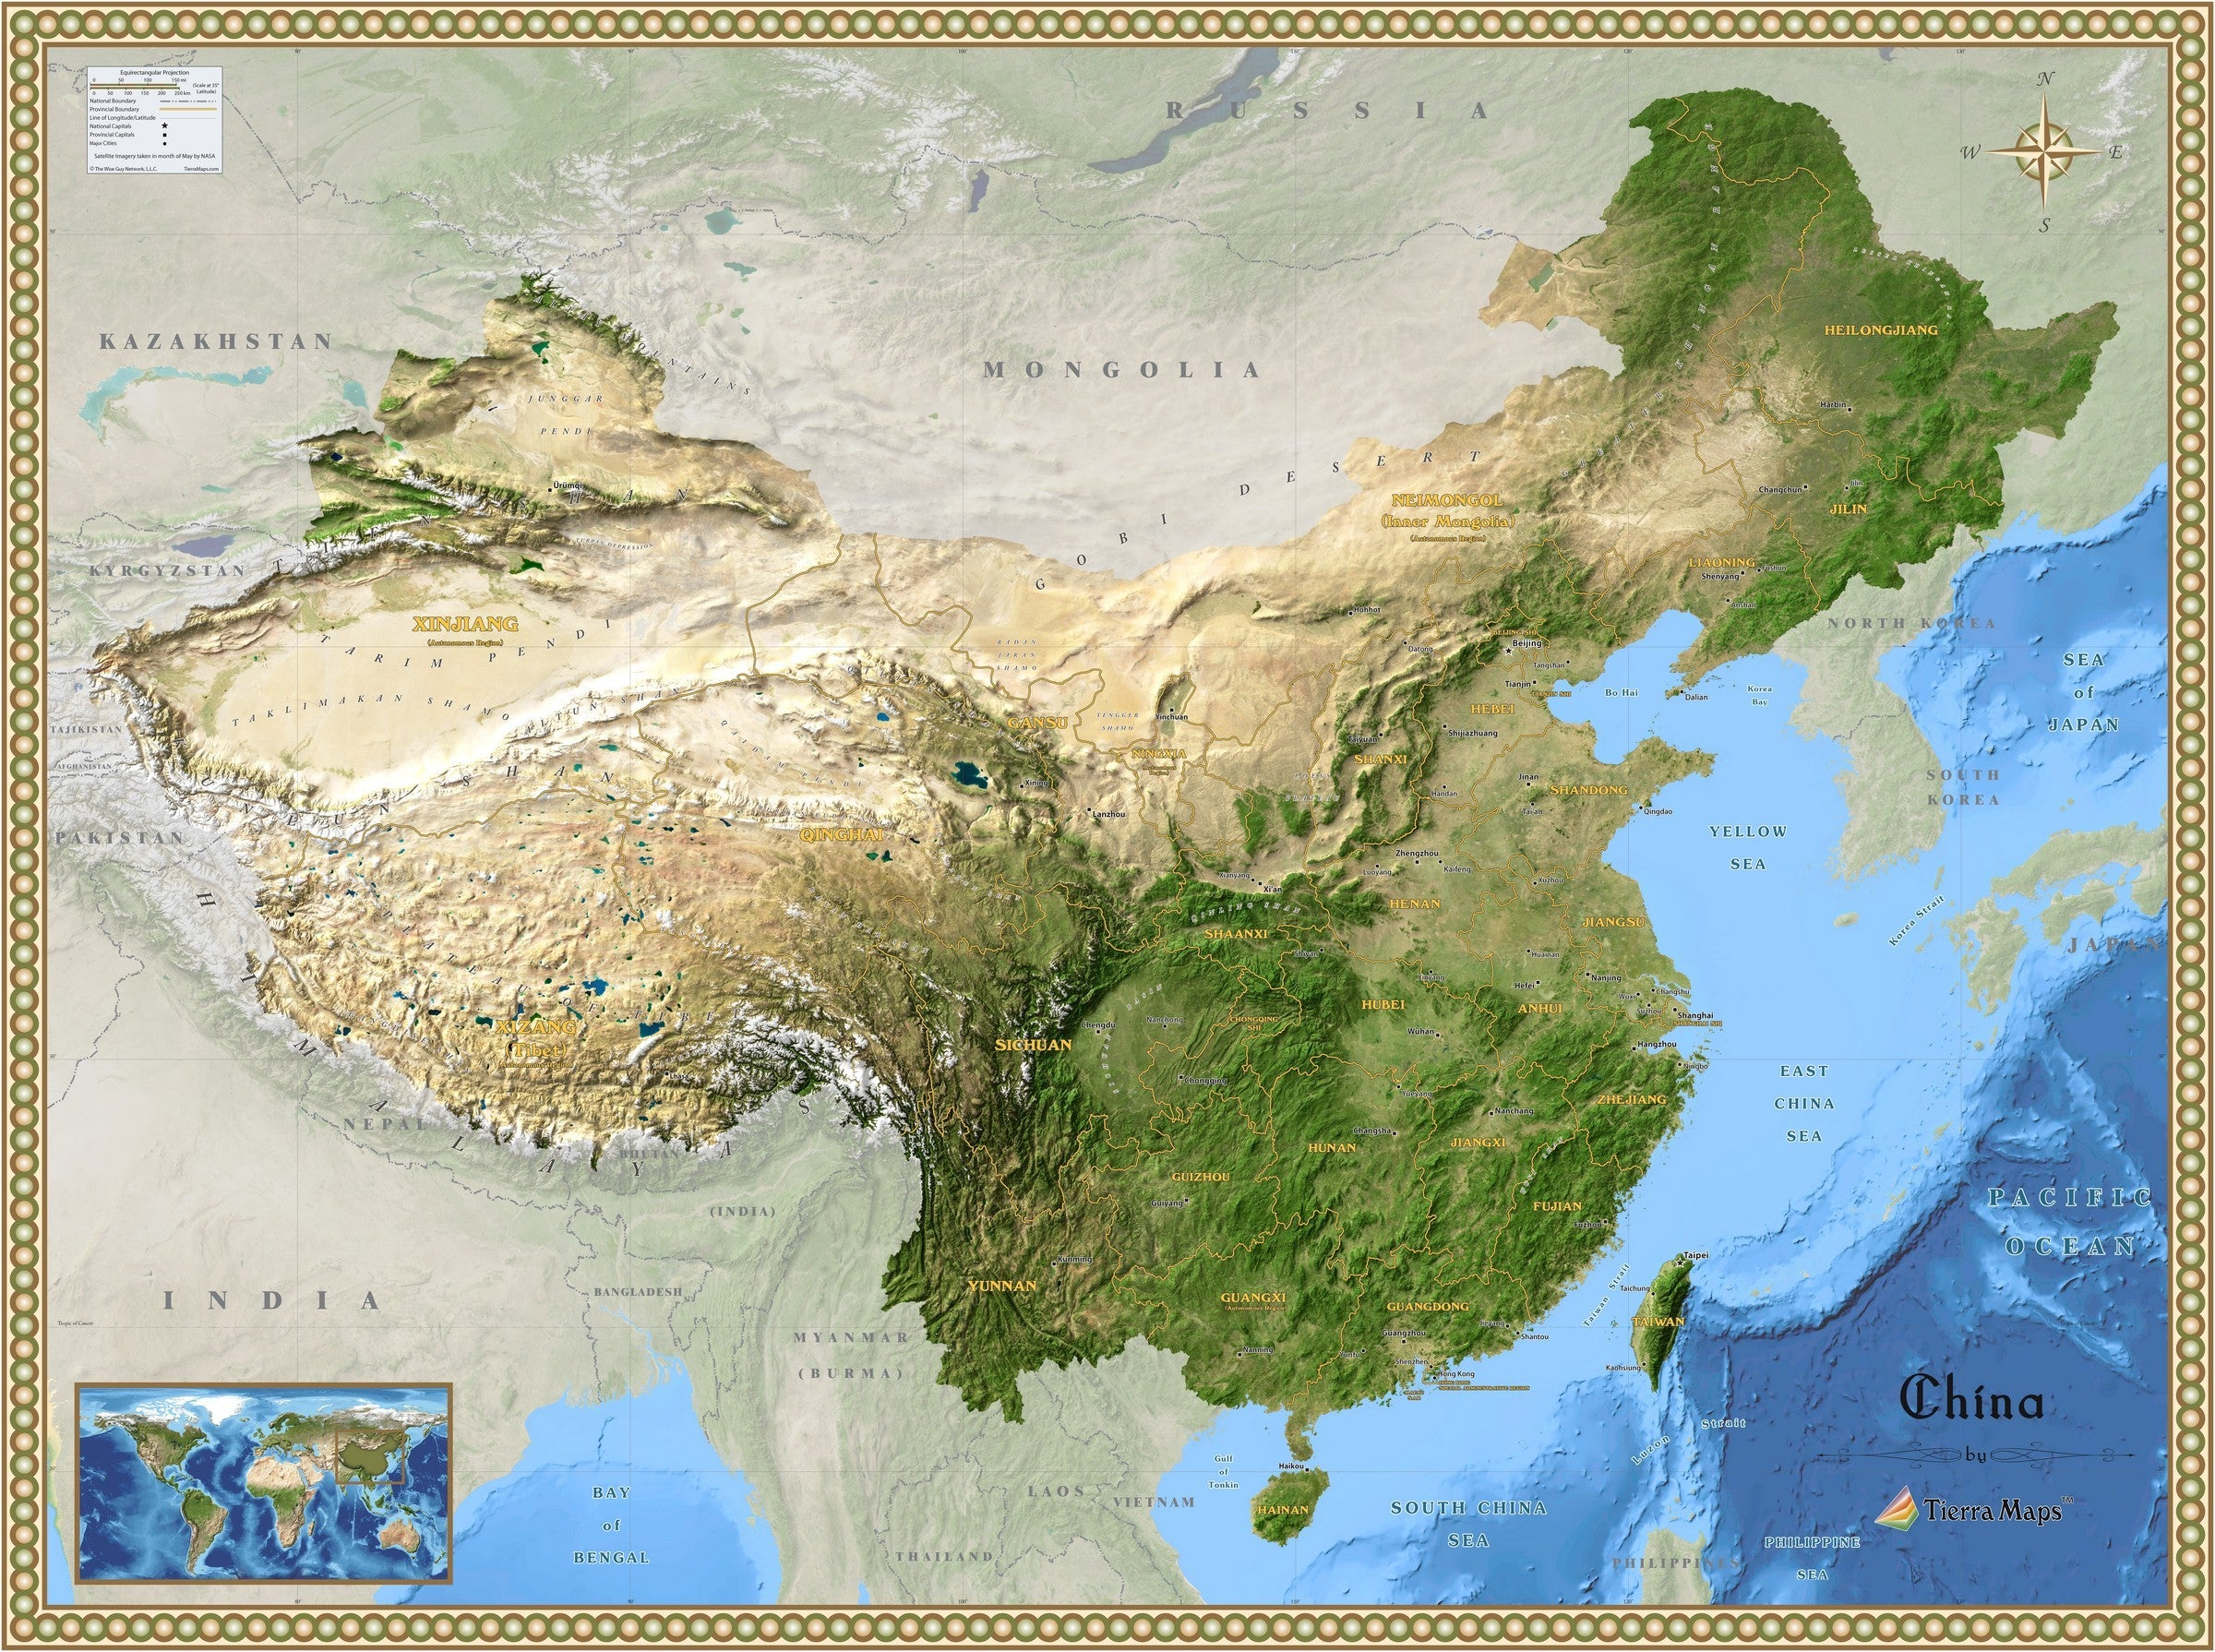 China Satellite Wall Map on asia of china, topographic map of china, map all rivers in china, road map of china, google earth china, map of russia and china, shopping of china, atlas of china, tourism of china, precipitation map of china, political map of china, large detailed maps of china, elevation map of china, aerial view of china, physical map of north china, google maps china, sixy of china, u.s. consulate guangzhou china, terracotta warriors of china, vintage map of china,